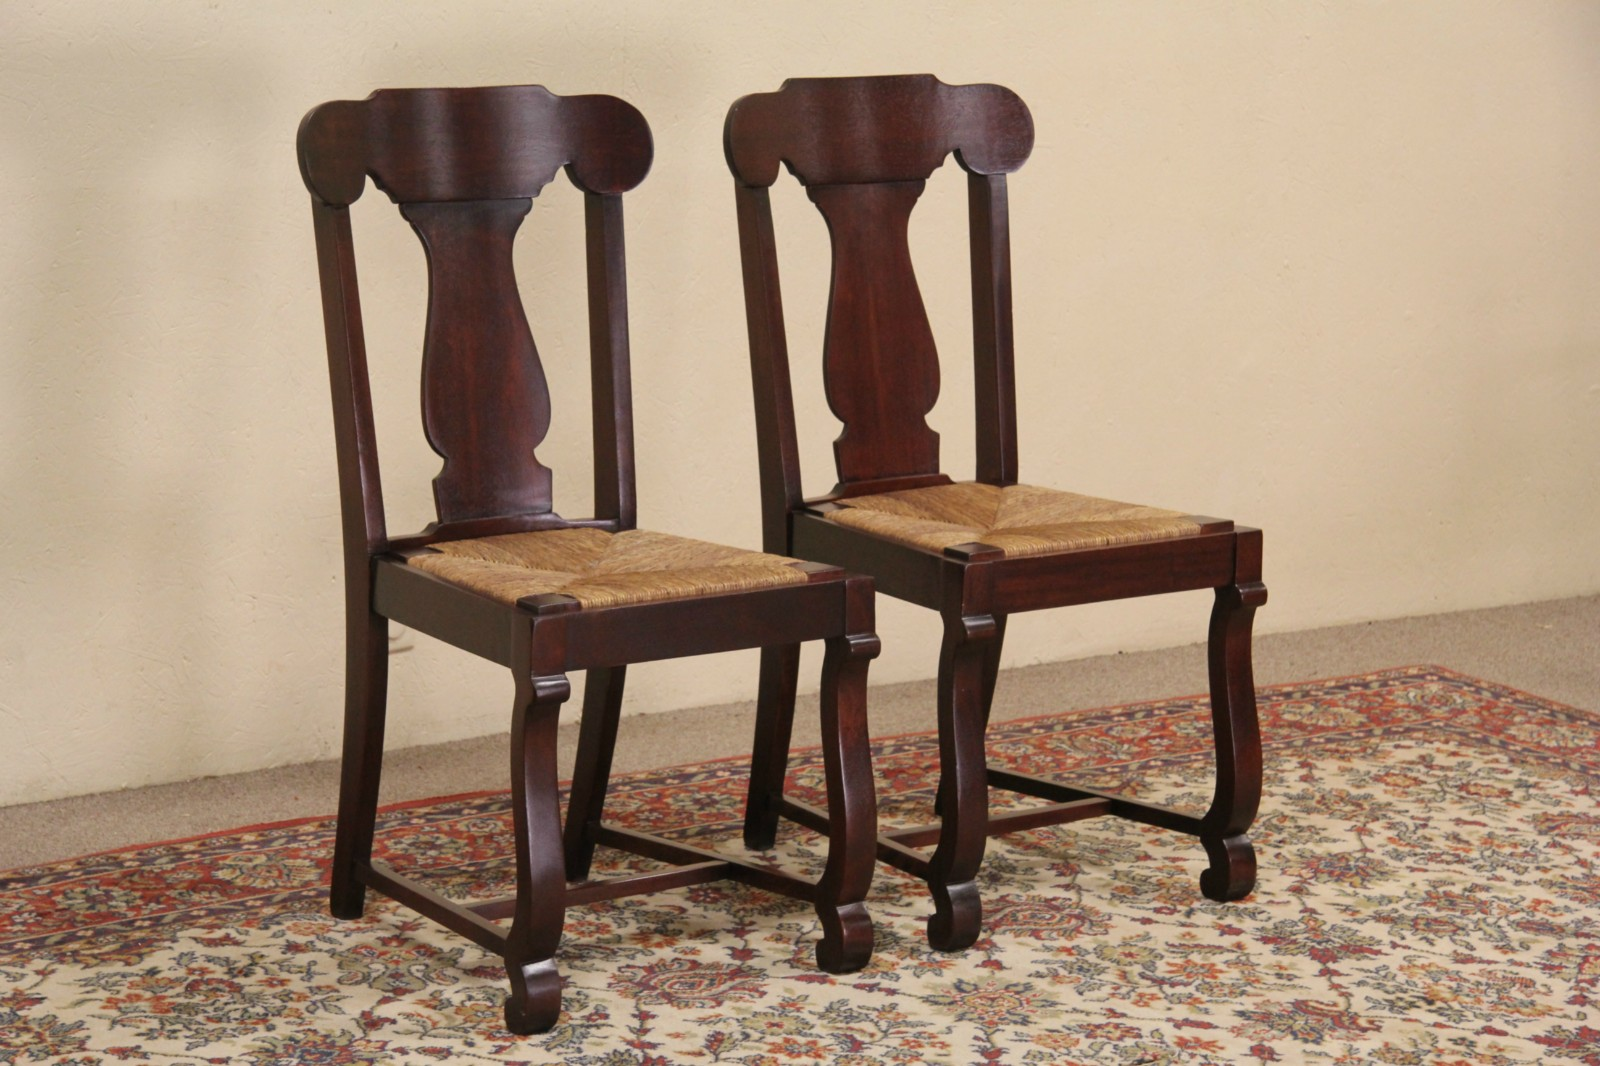 Pair Of 1910 Antique Mahogany Side Or Dining Chairs, Rush Seats